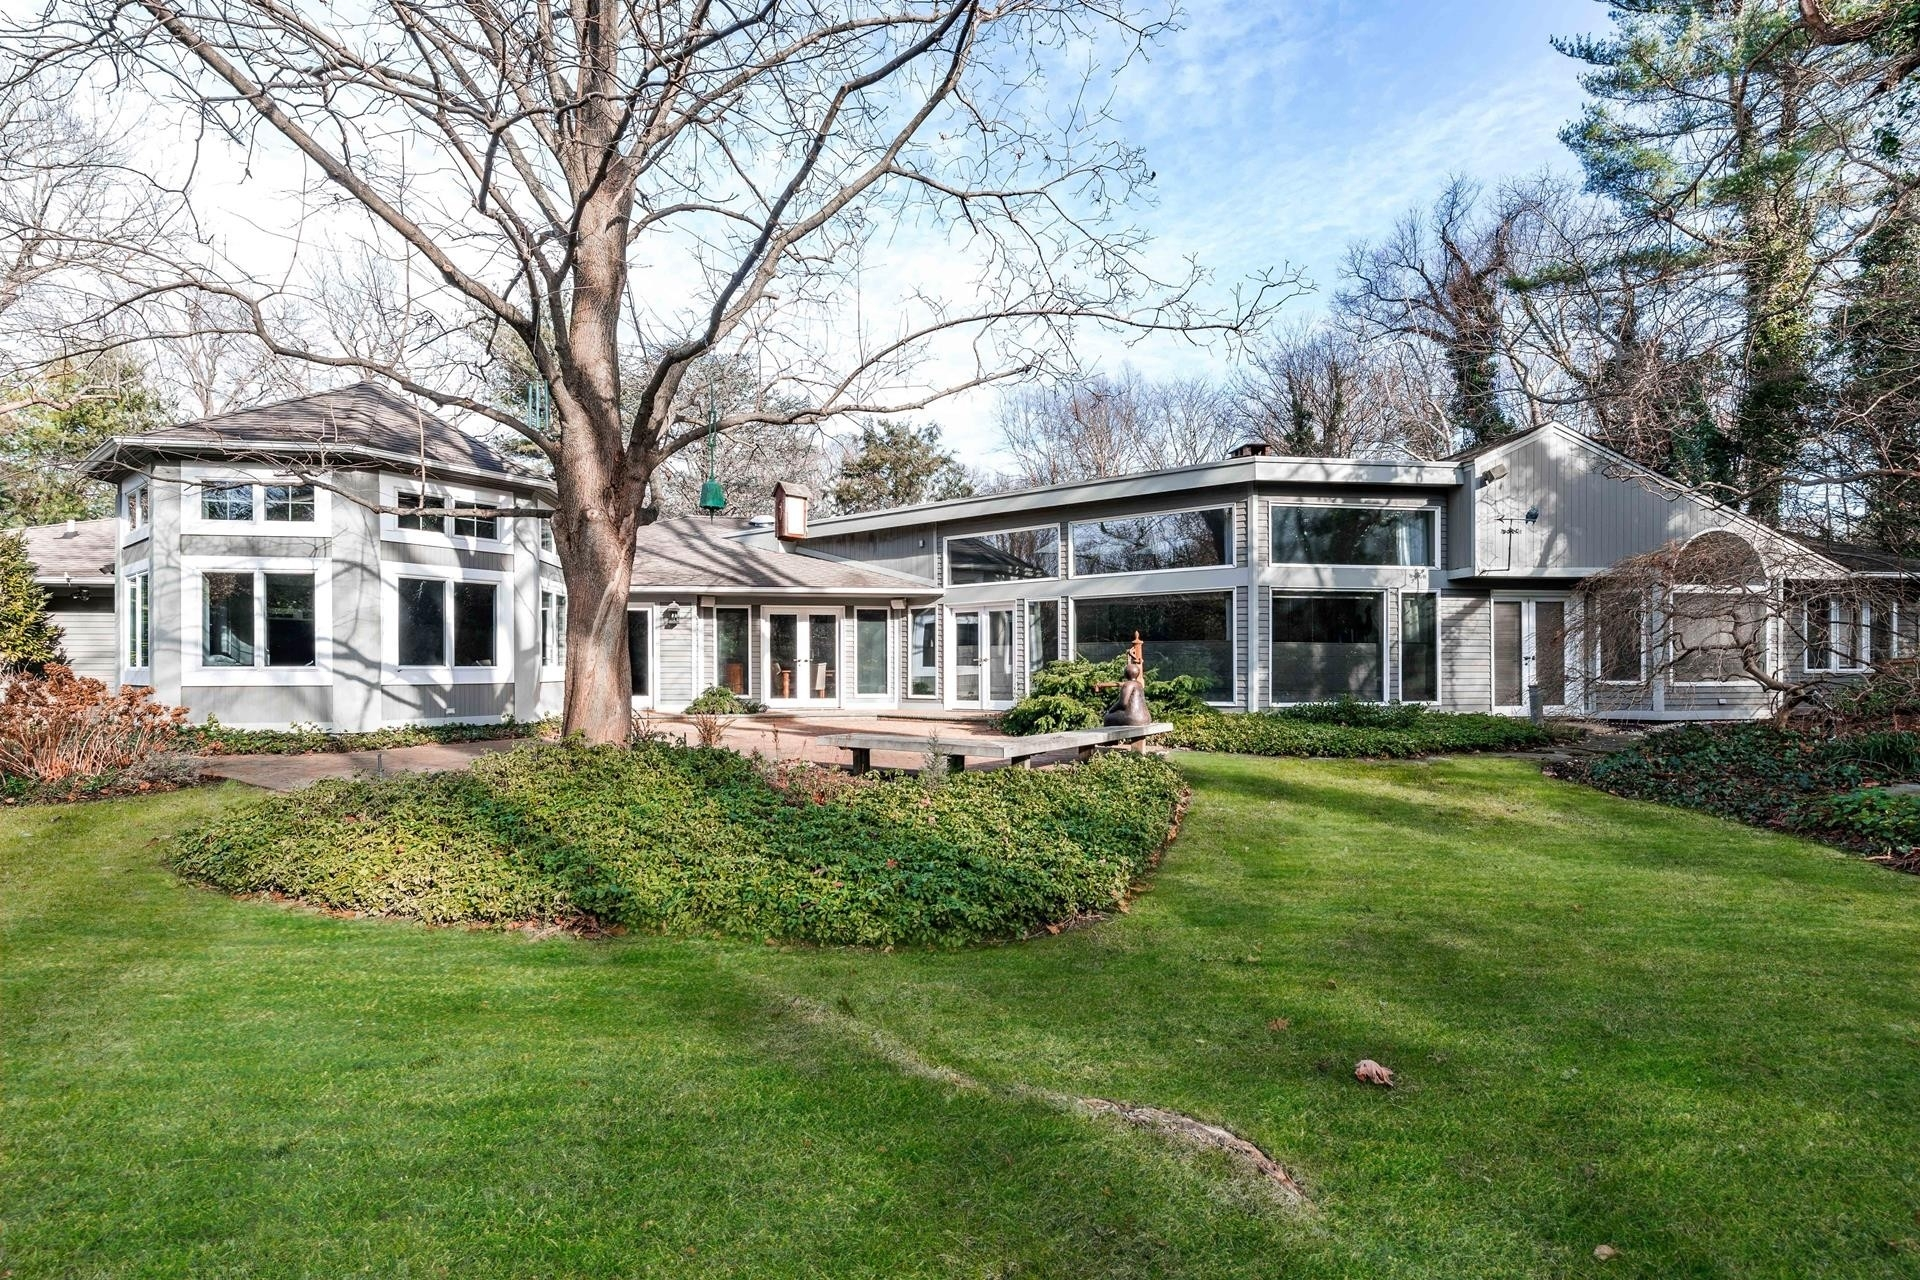 Property at Sands Point, NY 11050